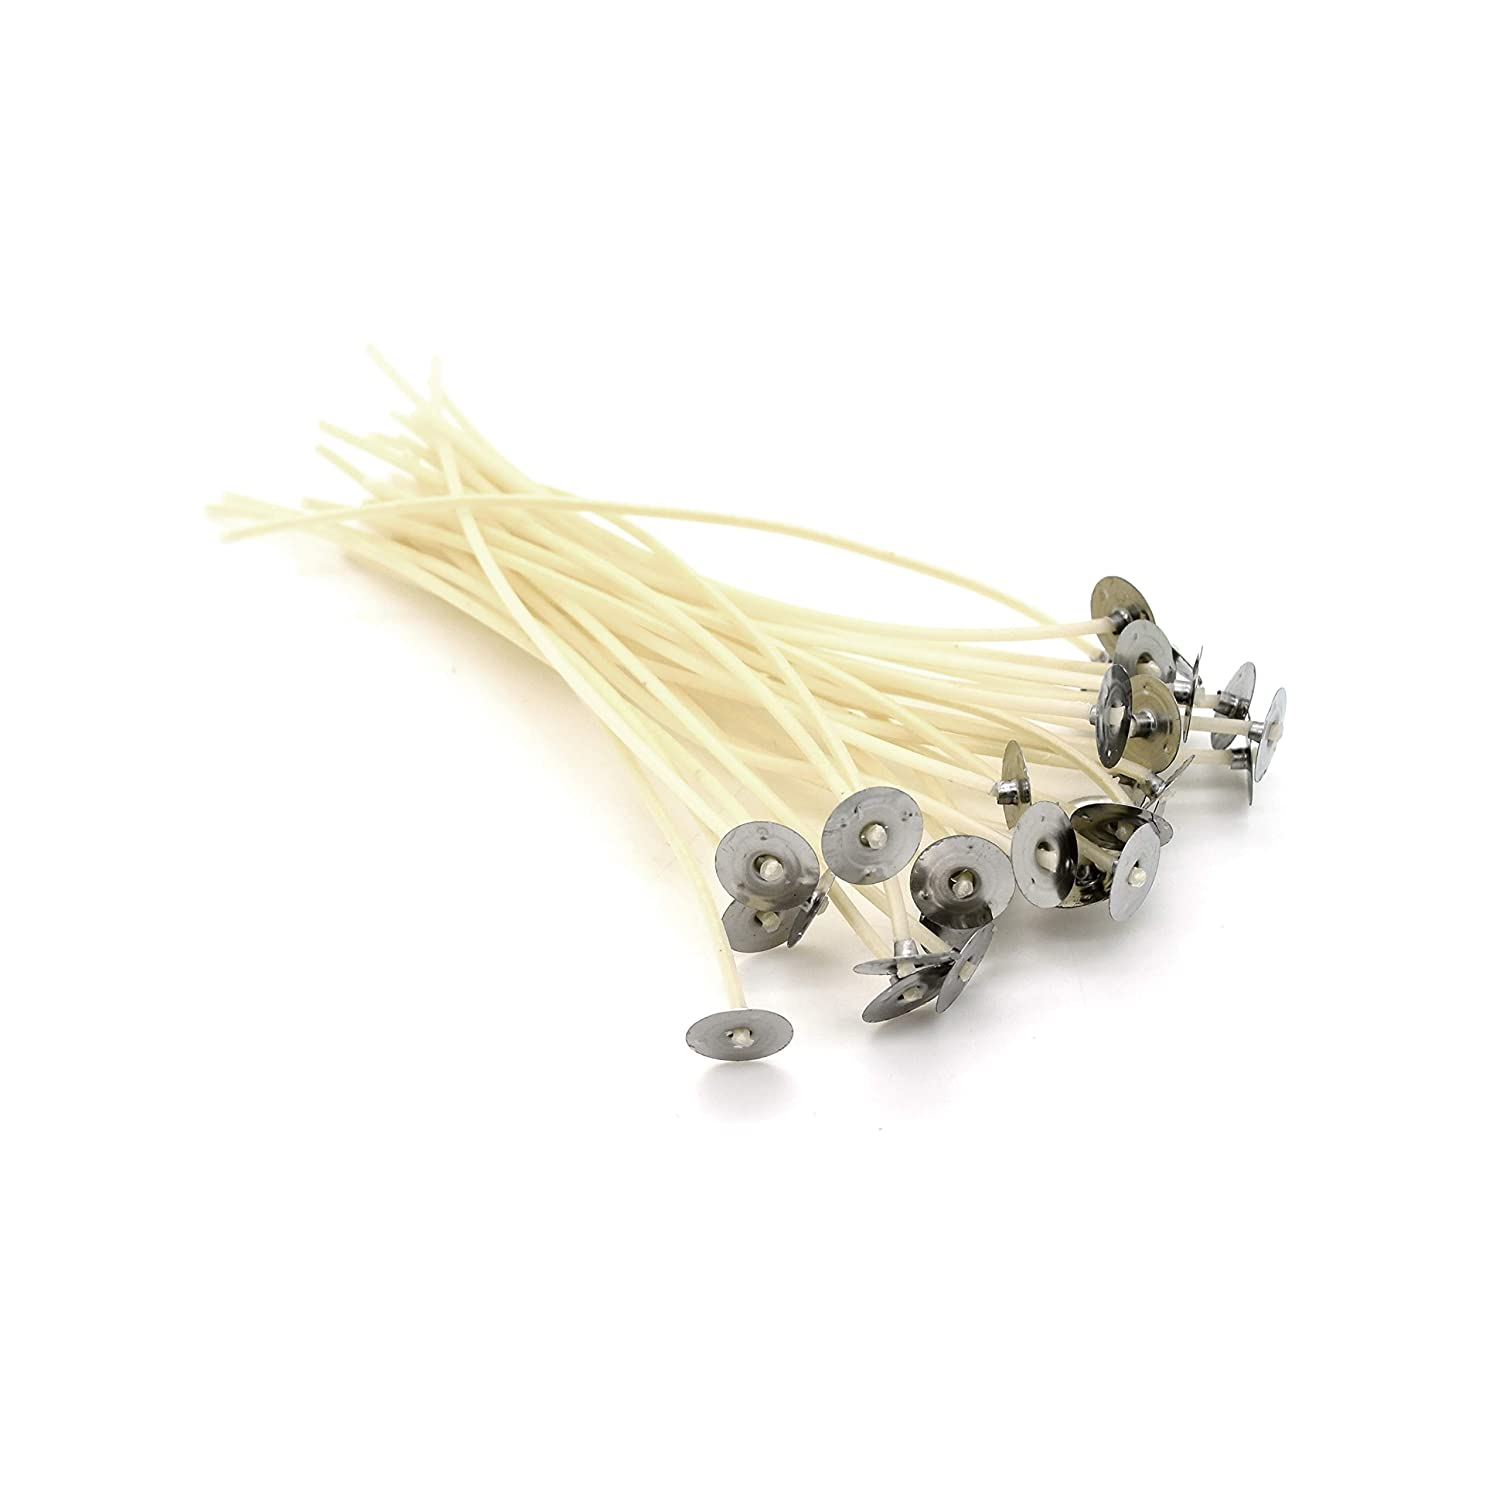 30 x 150mm Long Pre Waxed Wicks For Candle Making with sustainer`s Sola